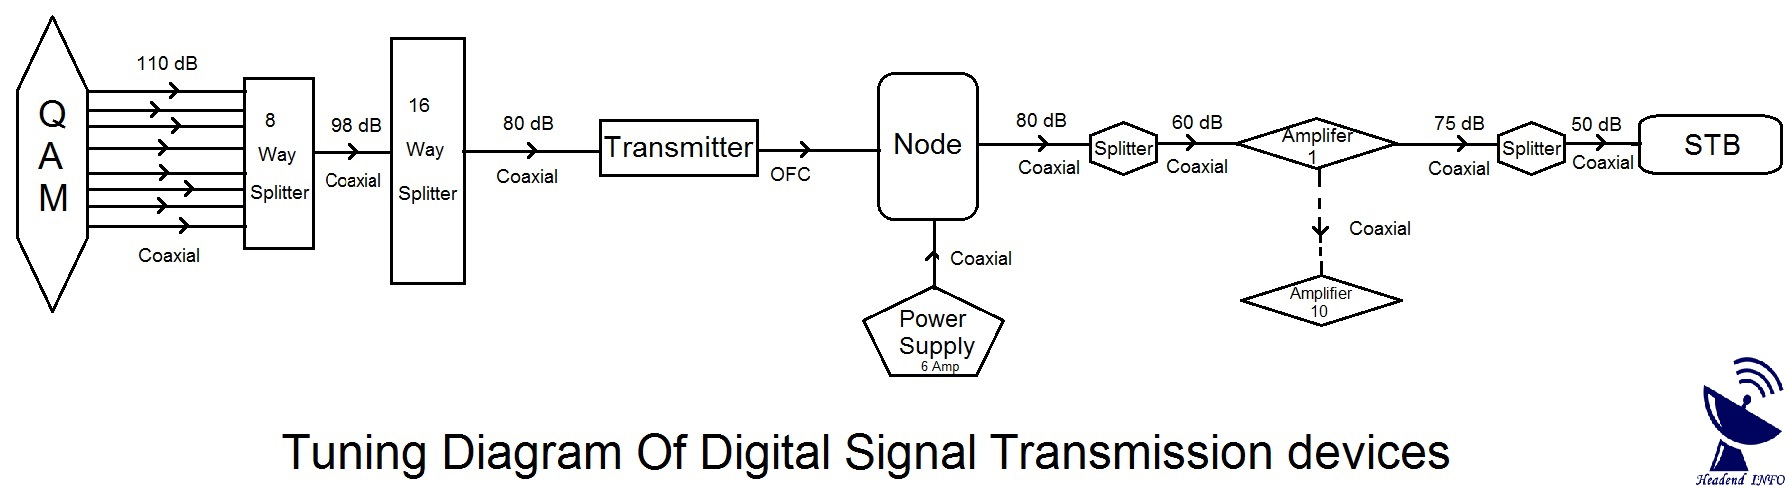 Tuning Of Digital Signal Transmission Devices